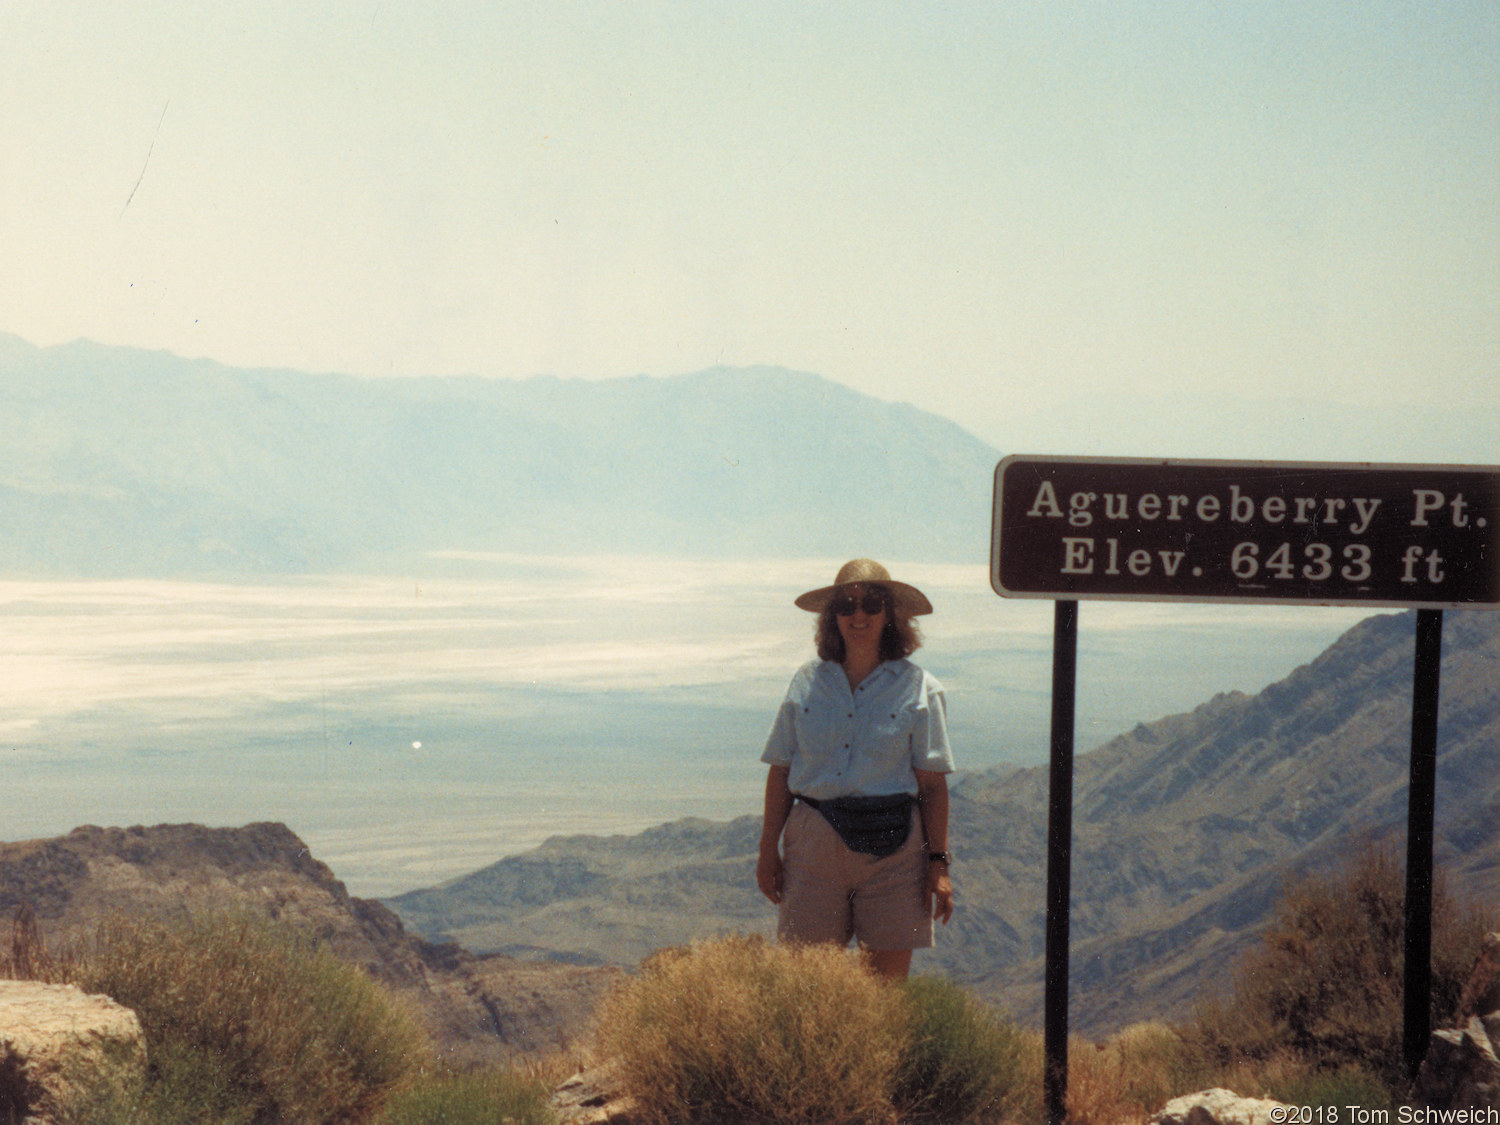 California, Inyo County, Aguereberry Point